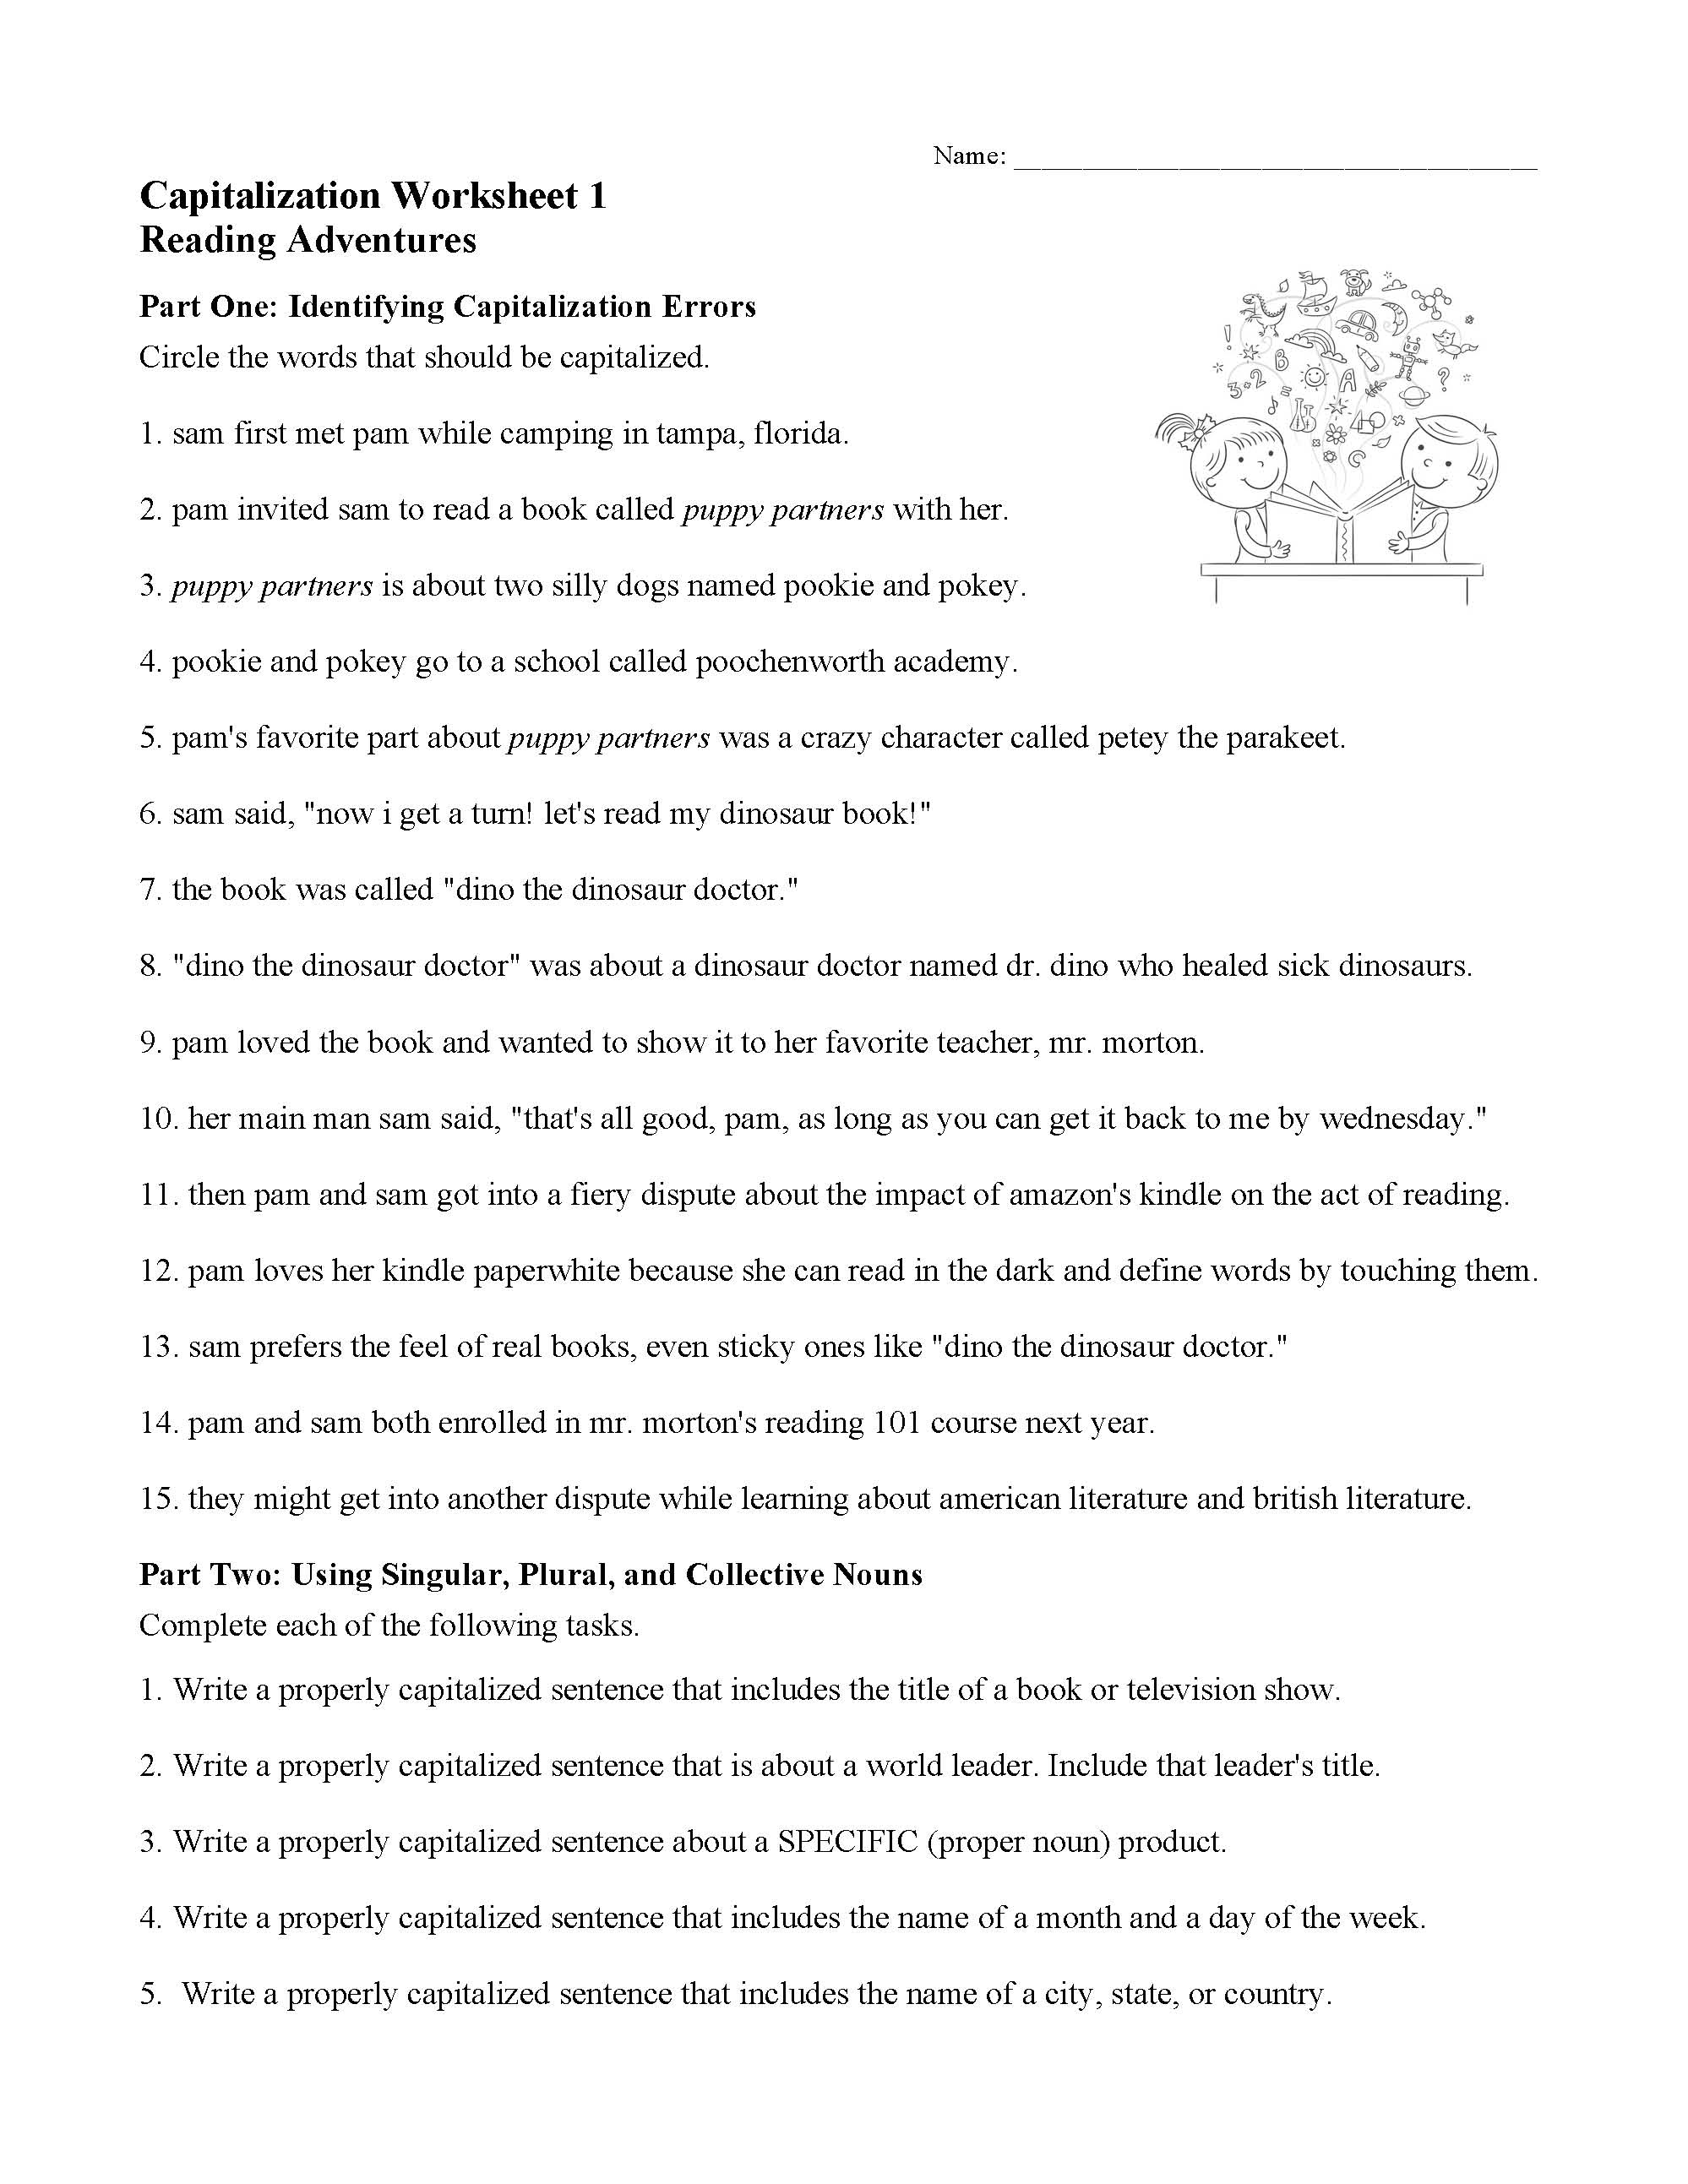 Capitalization Worksheet 1